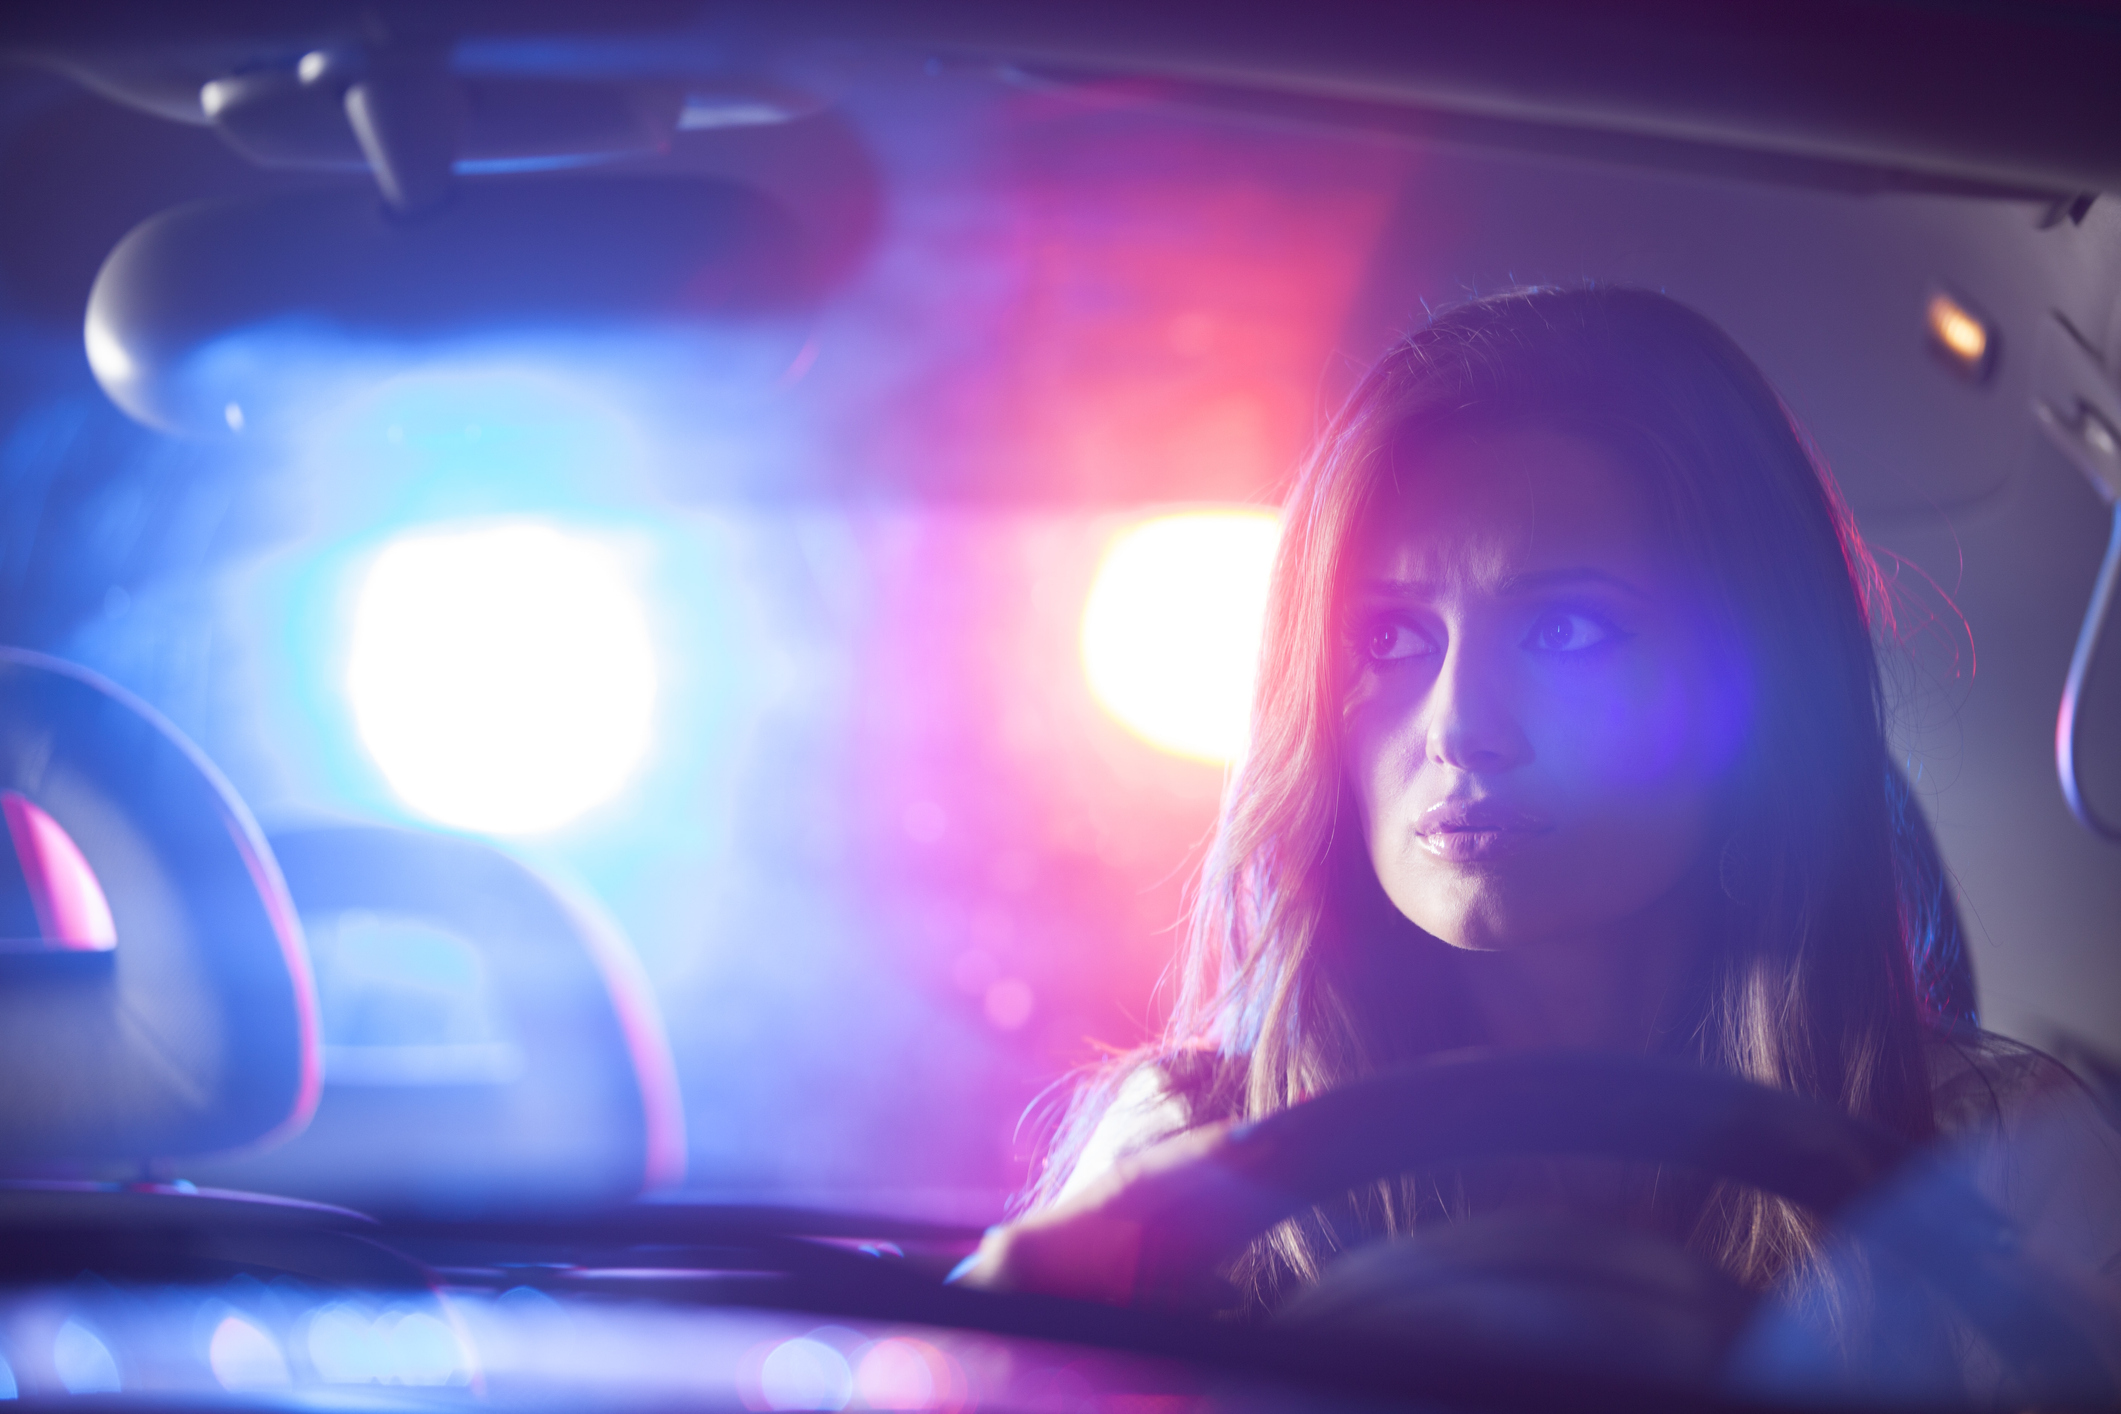 traffic stops, traffic violations, get an attorney, jennifer A curry, columbus georgia, get help, court, lawful